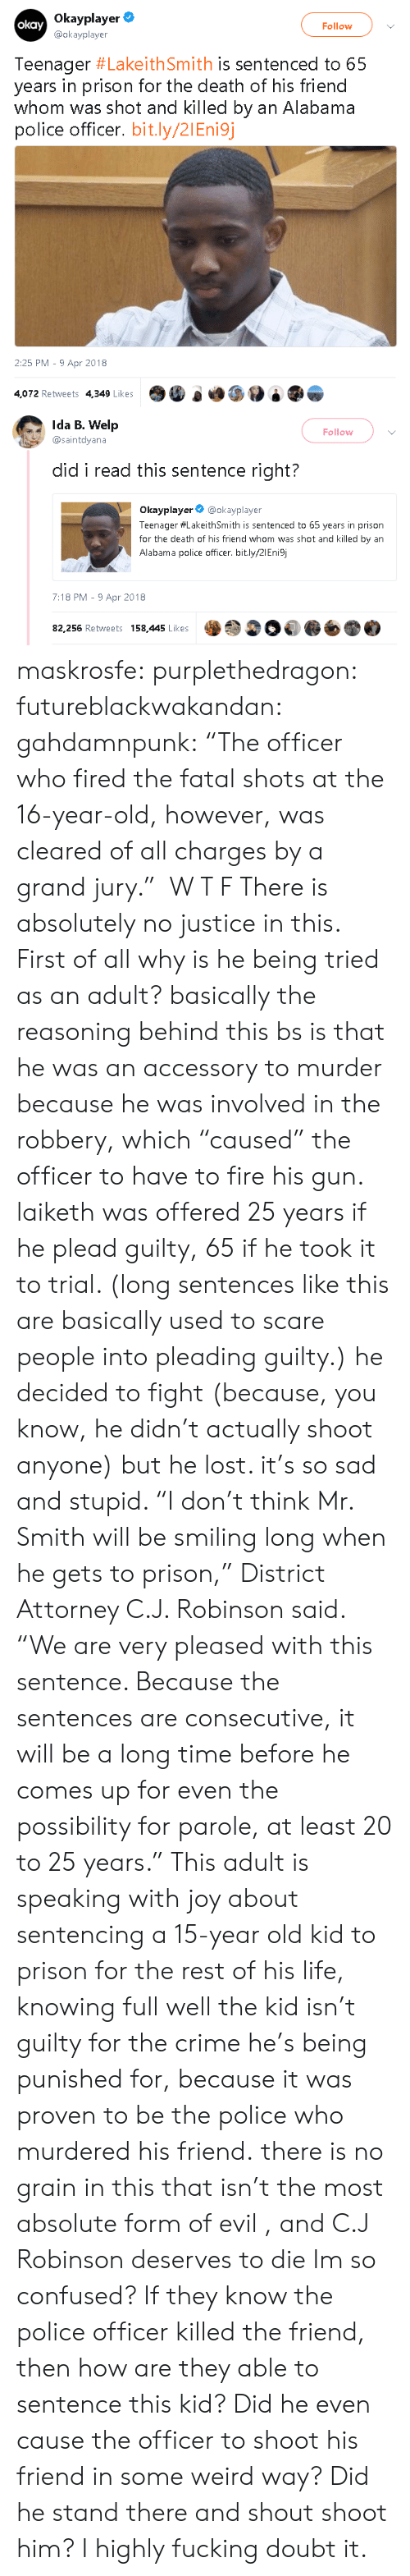 """parole: Okayplayer  @okayplayer  okay  Follow  Teenager #LakeithSmith is sentenced to 65  years in prison for the death of his friend  whom was shot and killed by an Alabama  police officer. bit.ly/21Eni9j  2:25 PM 9 Apr 2018  4,072 Retweets 4,349 LikesO0 e   Ida B. Welp  @saintdyana  Follow  did i read this sentence right?  Okayplayer@okayplayer  Teenager #LakeithSmith is sentenced to 65 years in prison  for the death of his friend whom was shot and killed by an  Alabama police officer. bit.ly/2IEnisj  7:18 PM -9 Apr 2018  82,256 Retweets 158,445 Likes maskrosfe: purplethedragon:  futureblackwakandan:  gahdamnpunk:   """"The officer who fired the fatal shots at the 16-year-old, however, was cleared of all charges by a grand jury."""" W T F   There is absolutely no justice in this. First of all why is he being tried as an adult?   basically the reasoning behind this bs is that he was an accessory to murder because he was involved in the robbery, which """"caused"""" the officer to have to fire his gun. laiketh was offered 25 years if he plead guilty, 65 if he took it to trial. (long sentences like this are basically used to scare people into pleading guilty.) he decided to fight (because, you know, he didn't actually shoot anyone) but he lost. it's so sad and stupid.     """"I don't think Mr. Smith will be smiling long when he gets to prison,"""" District Attorney C.J. Robinson said. """"We are very pleased with this sentence. Because the sentences are consecutive, it will be a long time before he comes up for even the possibility for parole, at least 20 to 25 years.""""  This adult is speaking with joy about sentencing a 15-year old kid to prison for the rest of his life, knowing full well the kid isn't guilty for the crime he's being punished for, because it was proven to be the police who murdered his friend.  there is no grain in this that isn't the most absolute form of evil , and C.J Robinson deserves to die Im so confused? If they know the police officer killed the friend, then how """